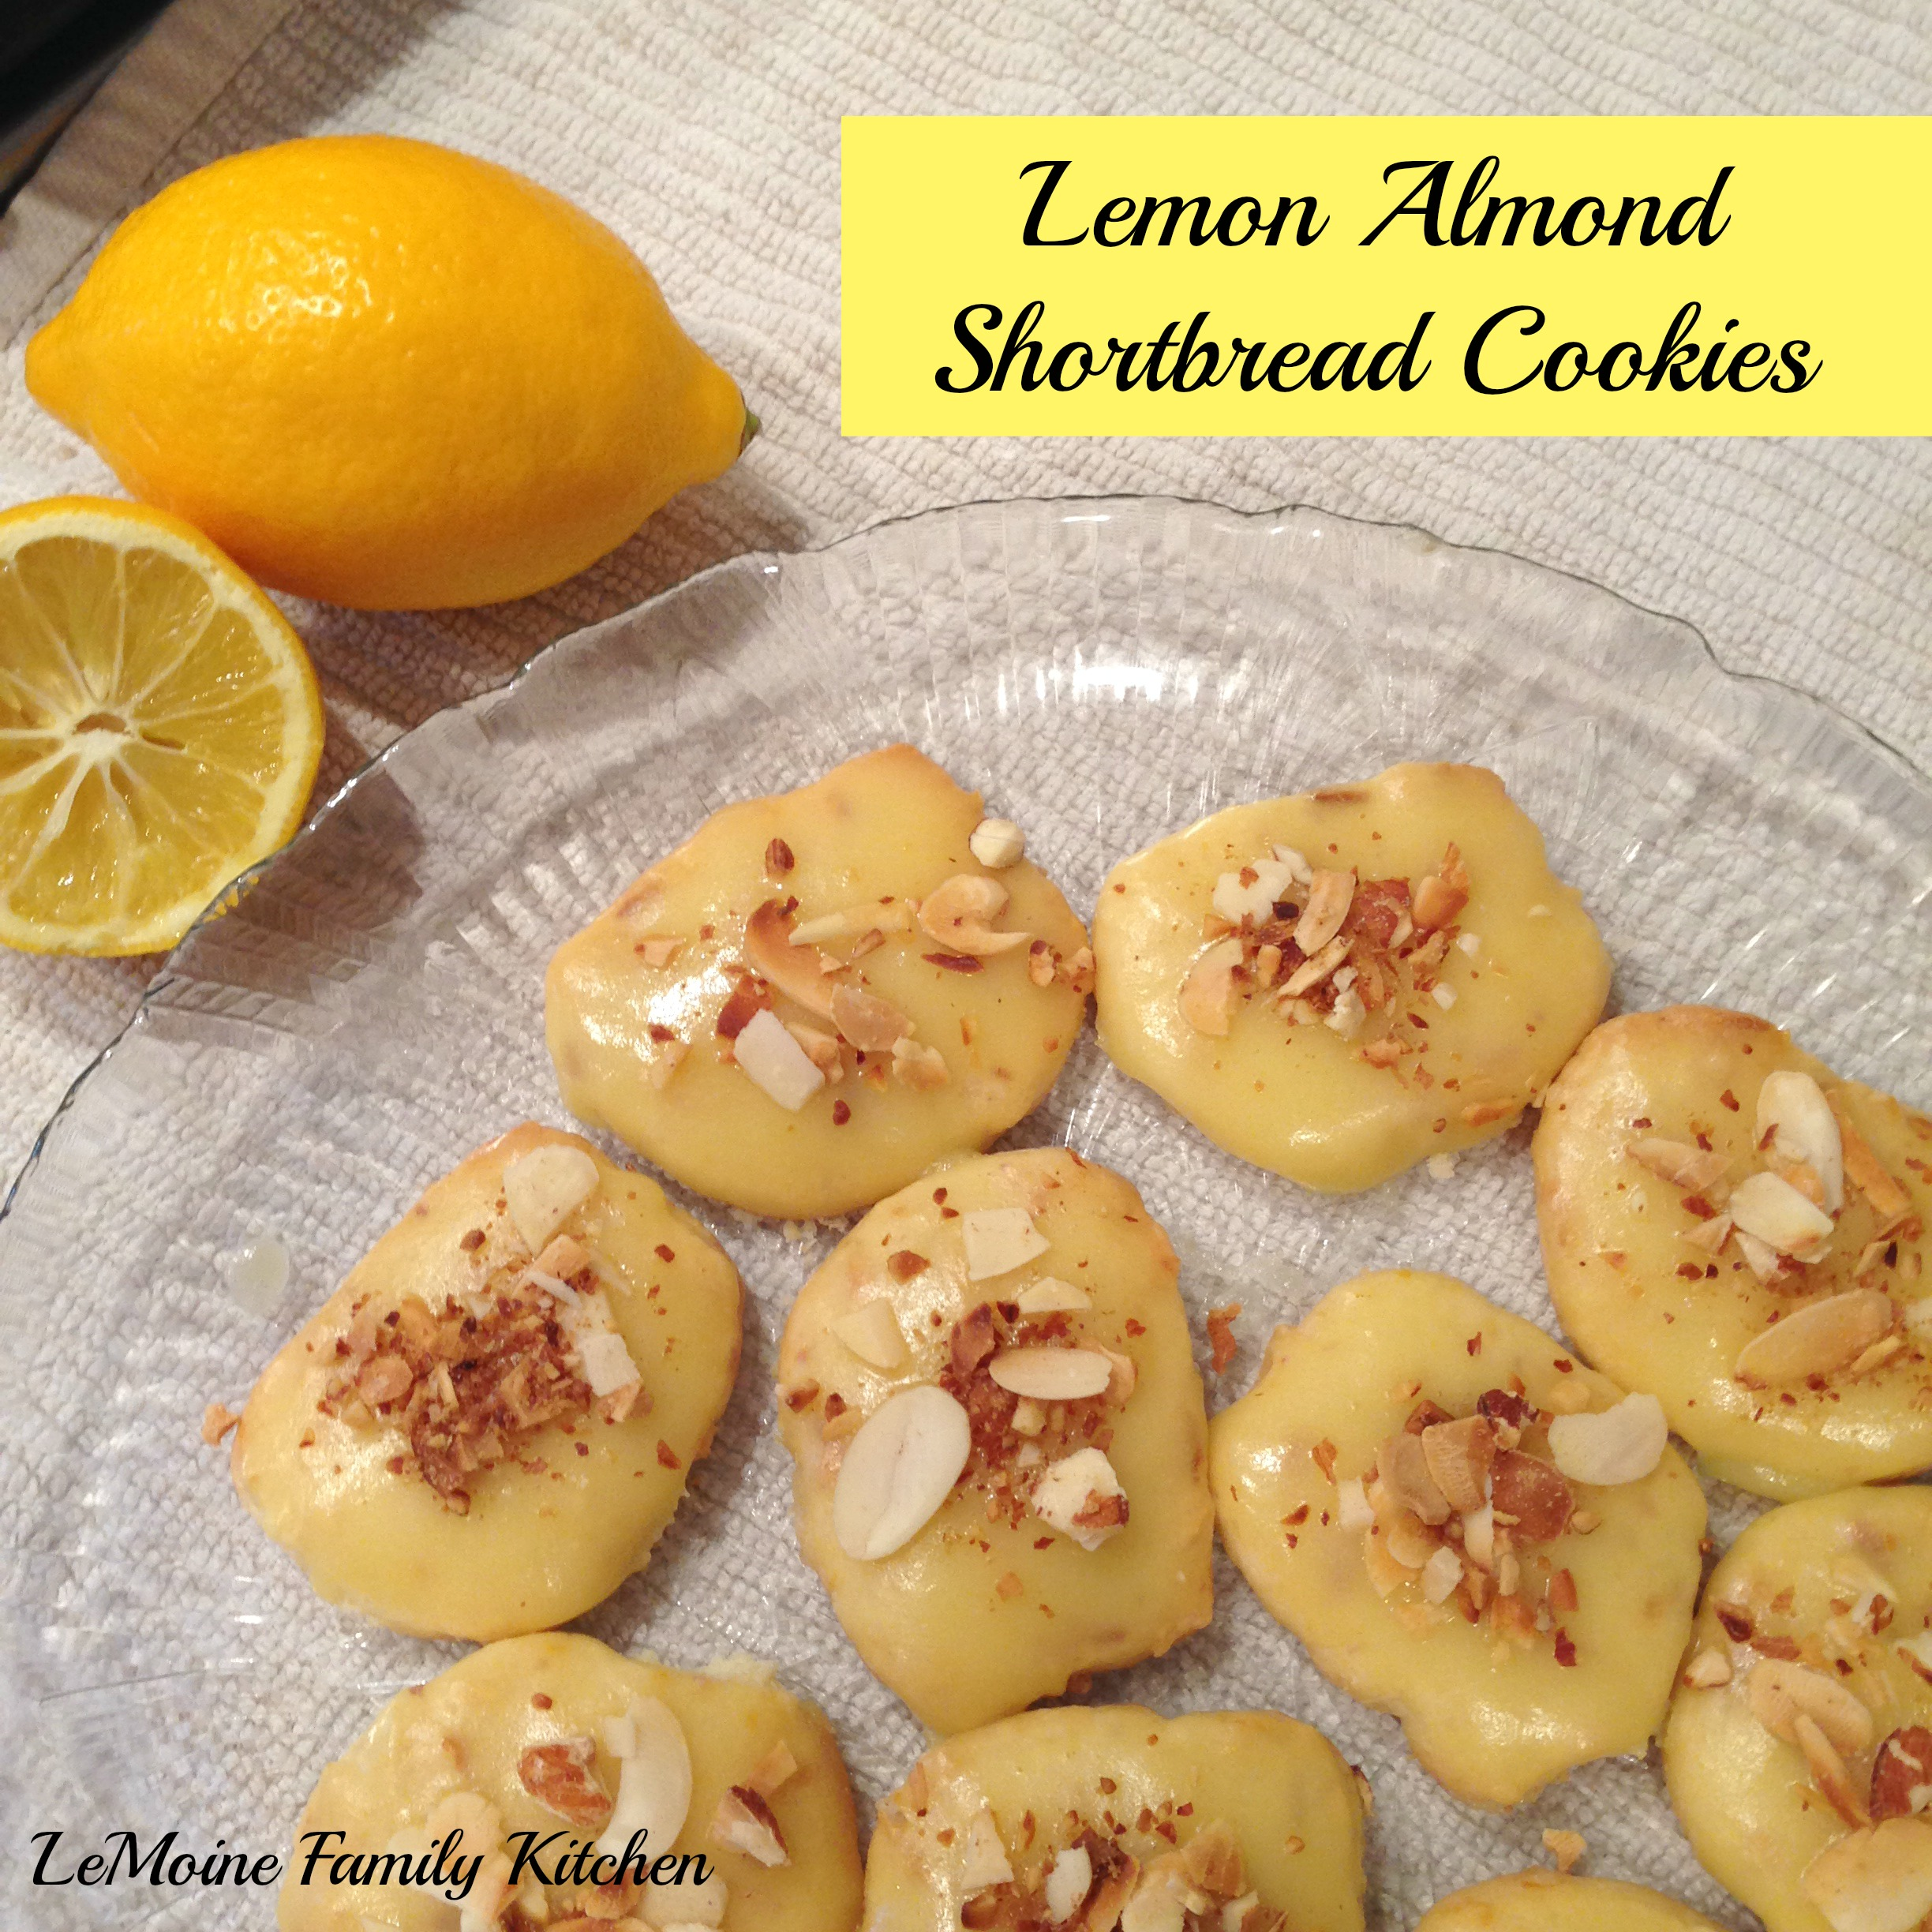 Lemon Almond Shortbread Cookies